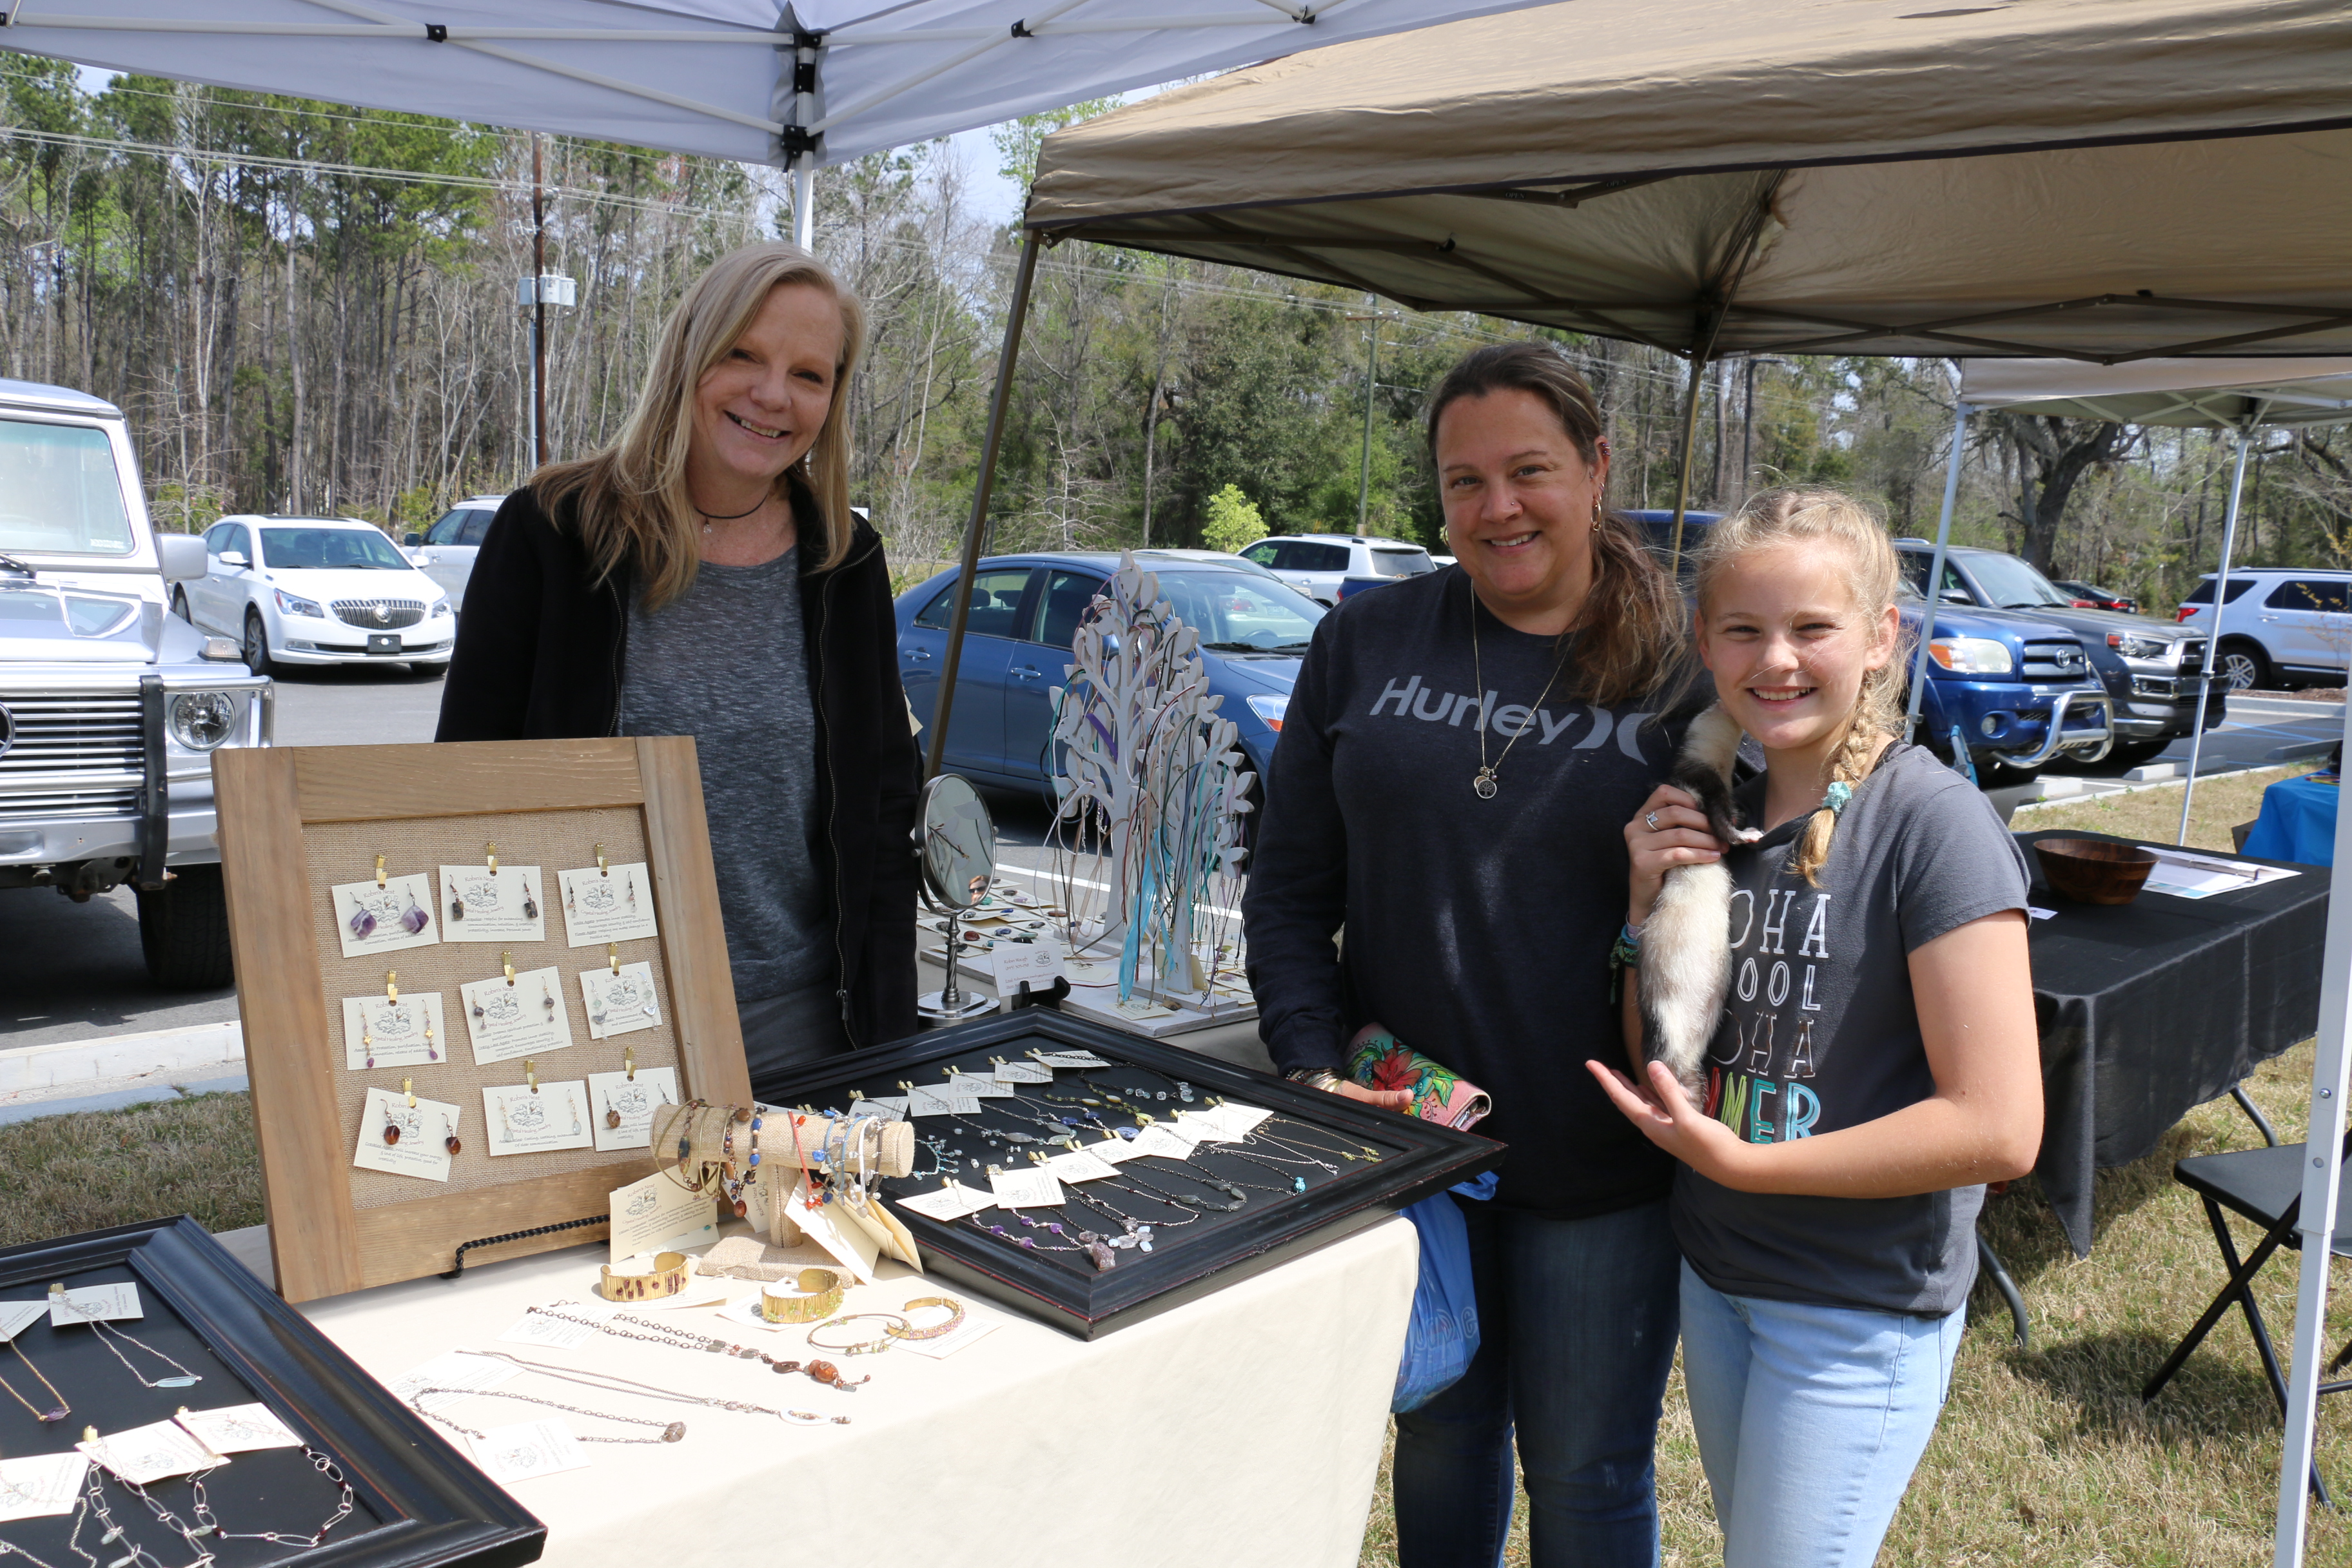 Mary and Mea Arthur, and their ferret Kira, browse at Robin's Next Crystal Healing Jewelry with owner Robin Waugh.